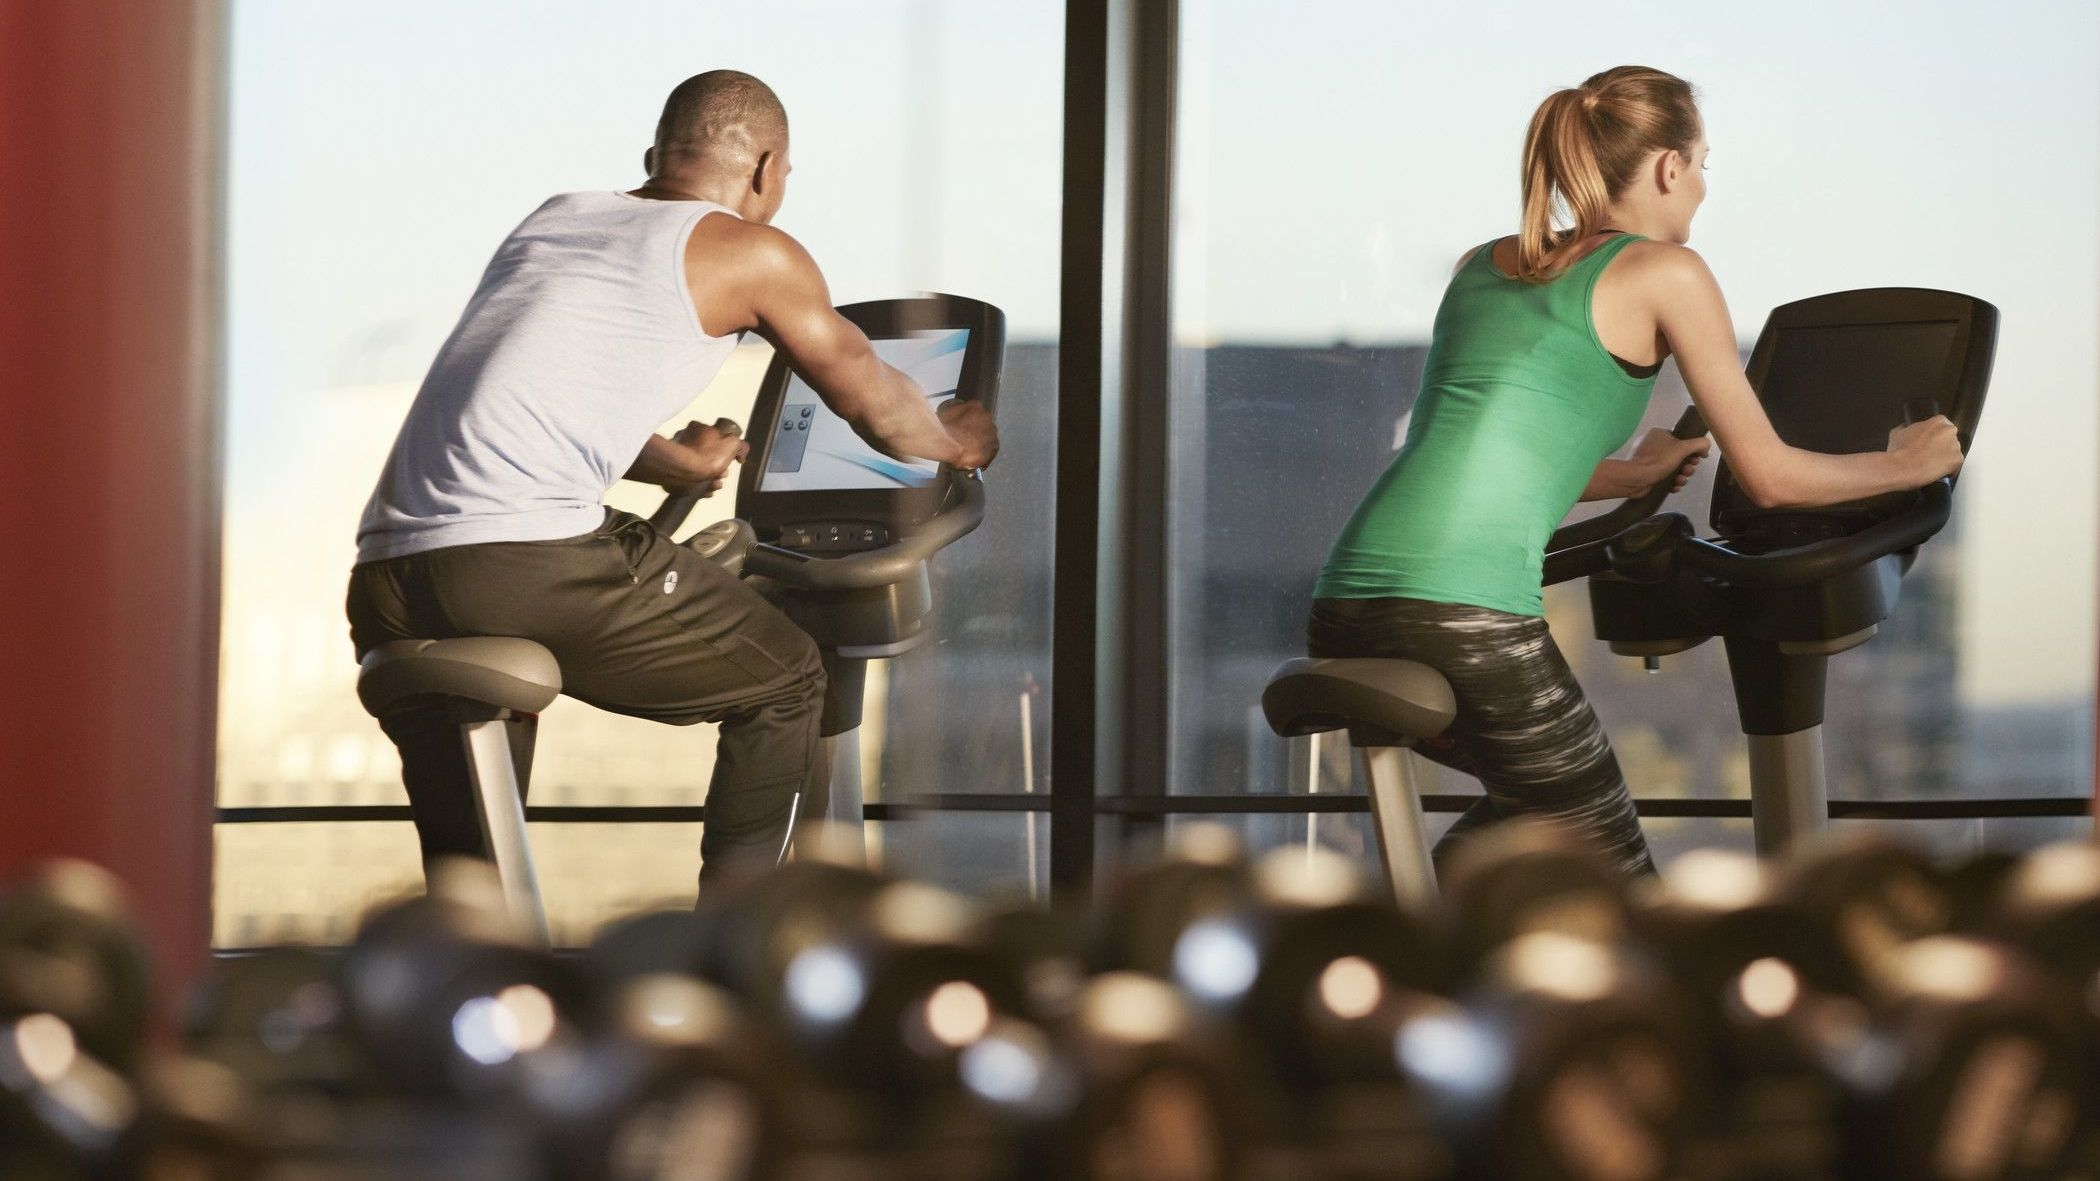 Beat the Heat at Sheraton Fitness